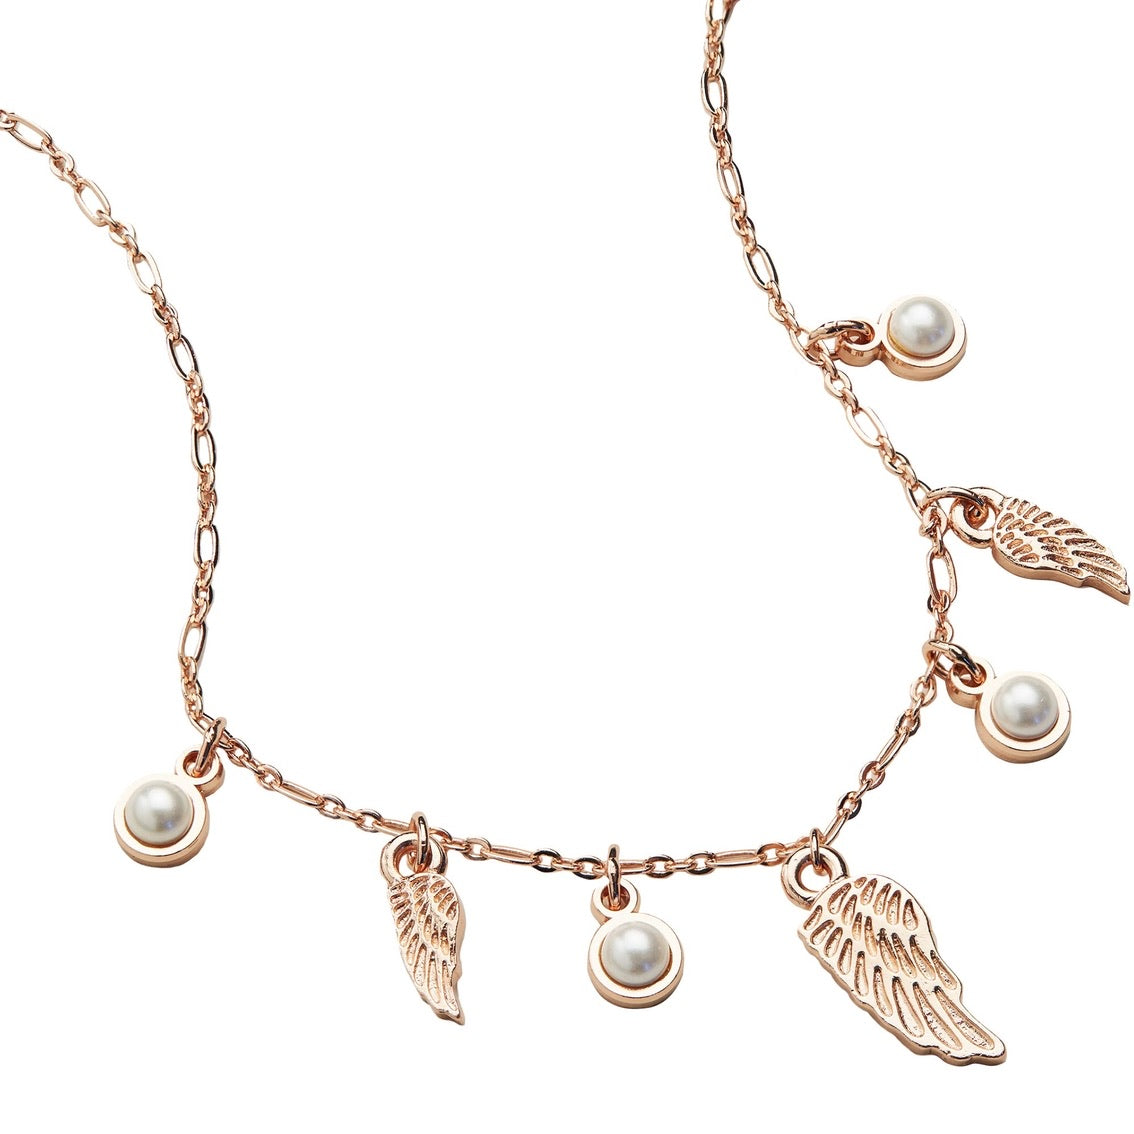 ALEX AND ANI Angel Wing & Pearl Delicate Adjustable Necklace Shiny Rose Gold